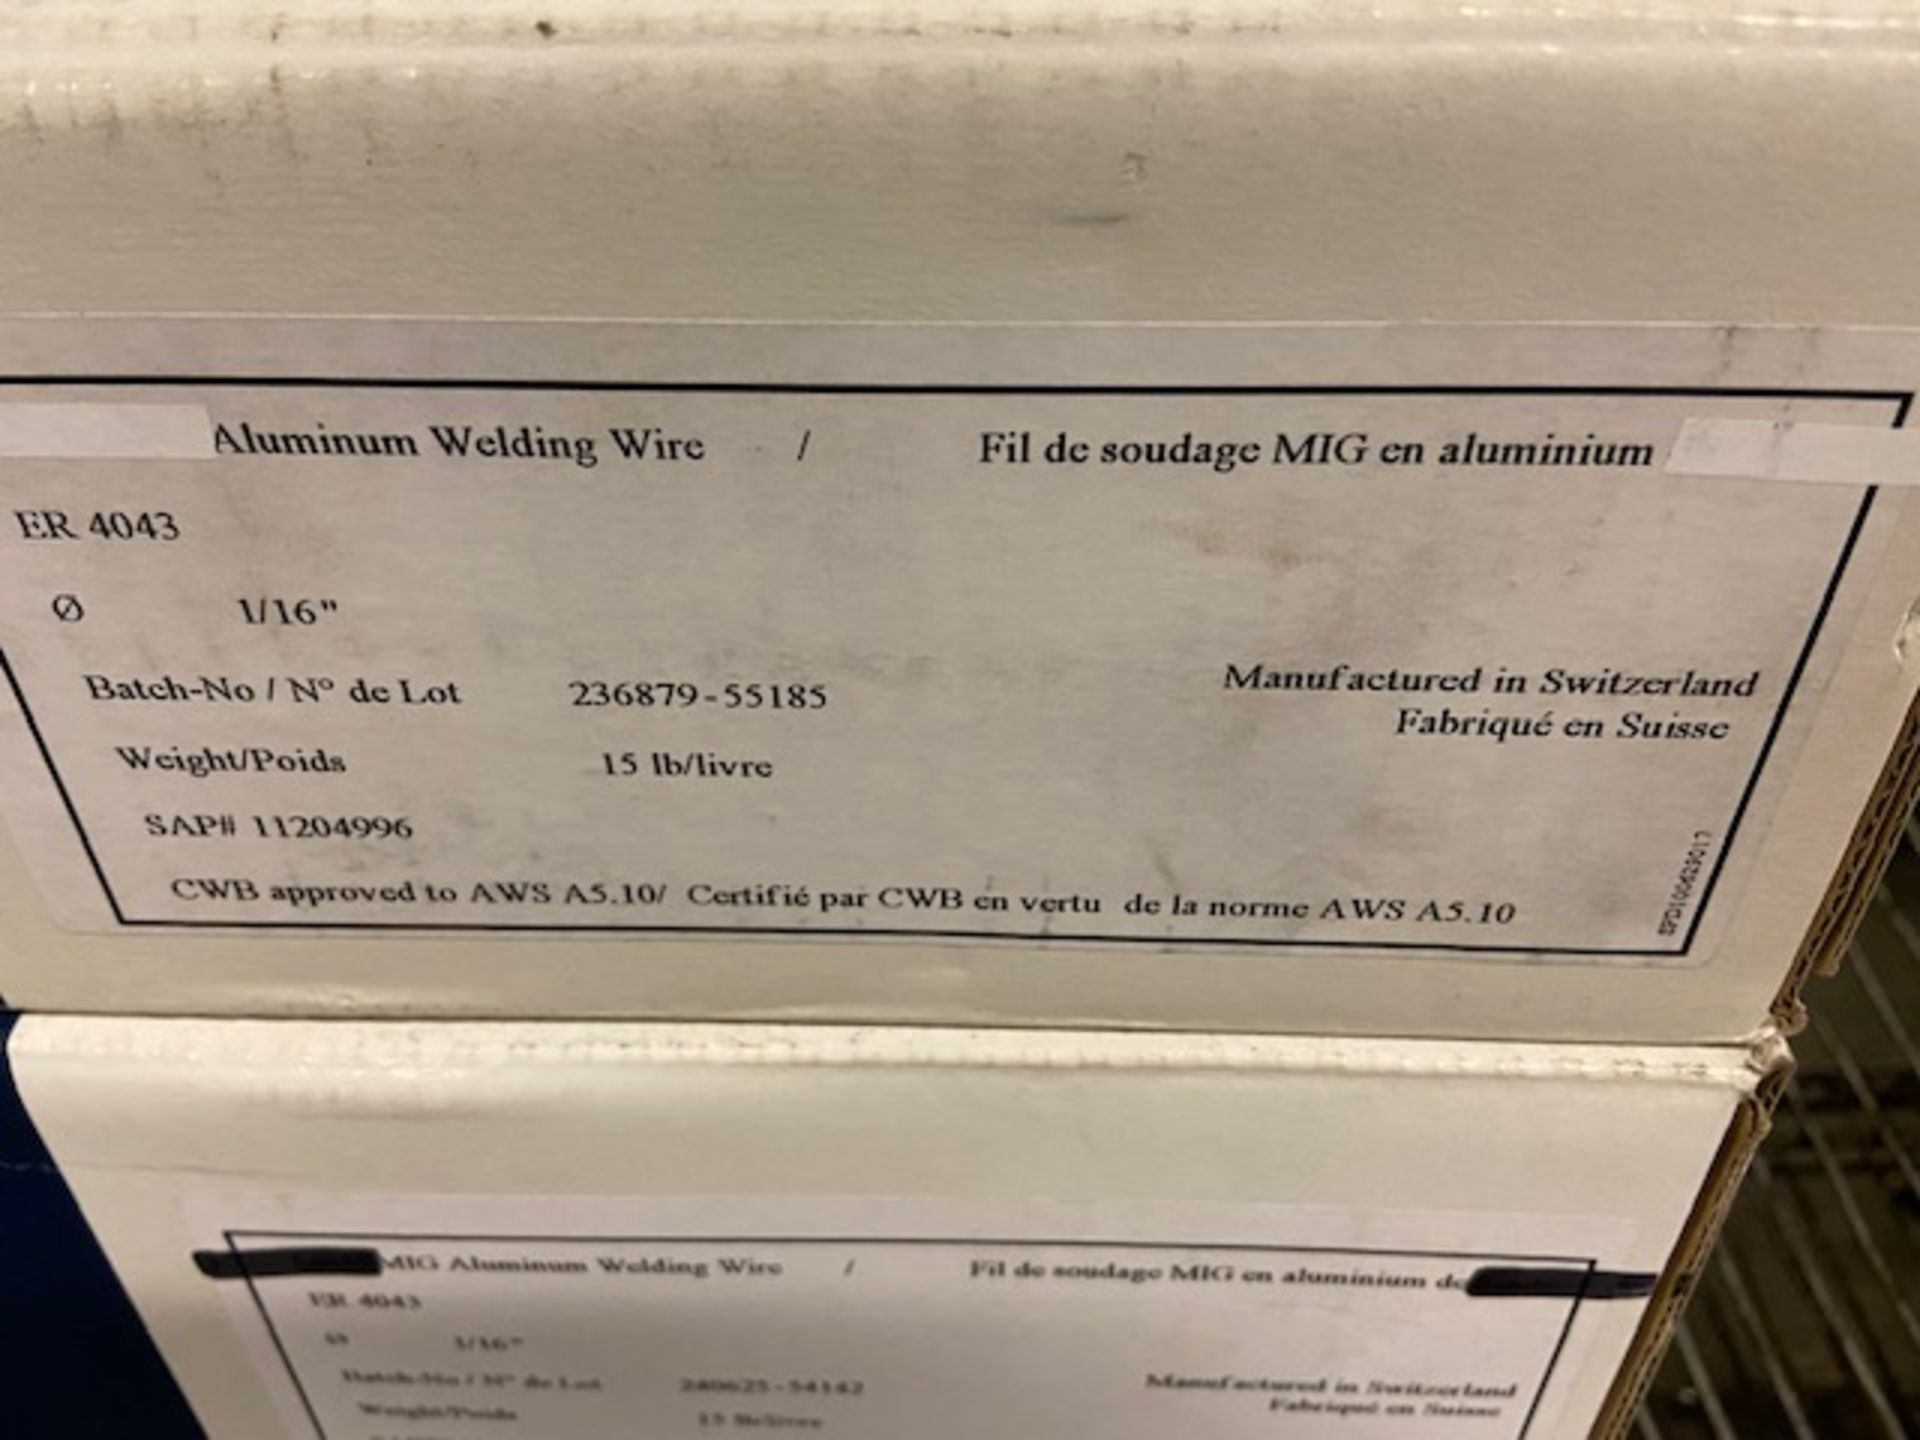 Lot of 4 Boxes of Linde Aluminum Wire - Image 2 of 2